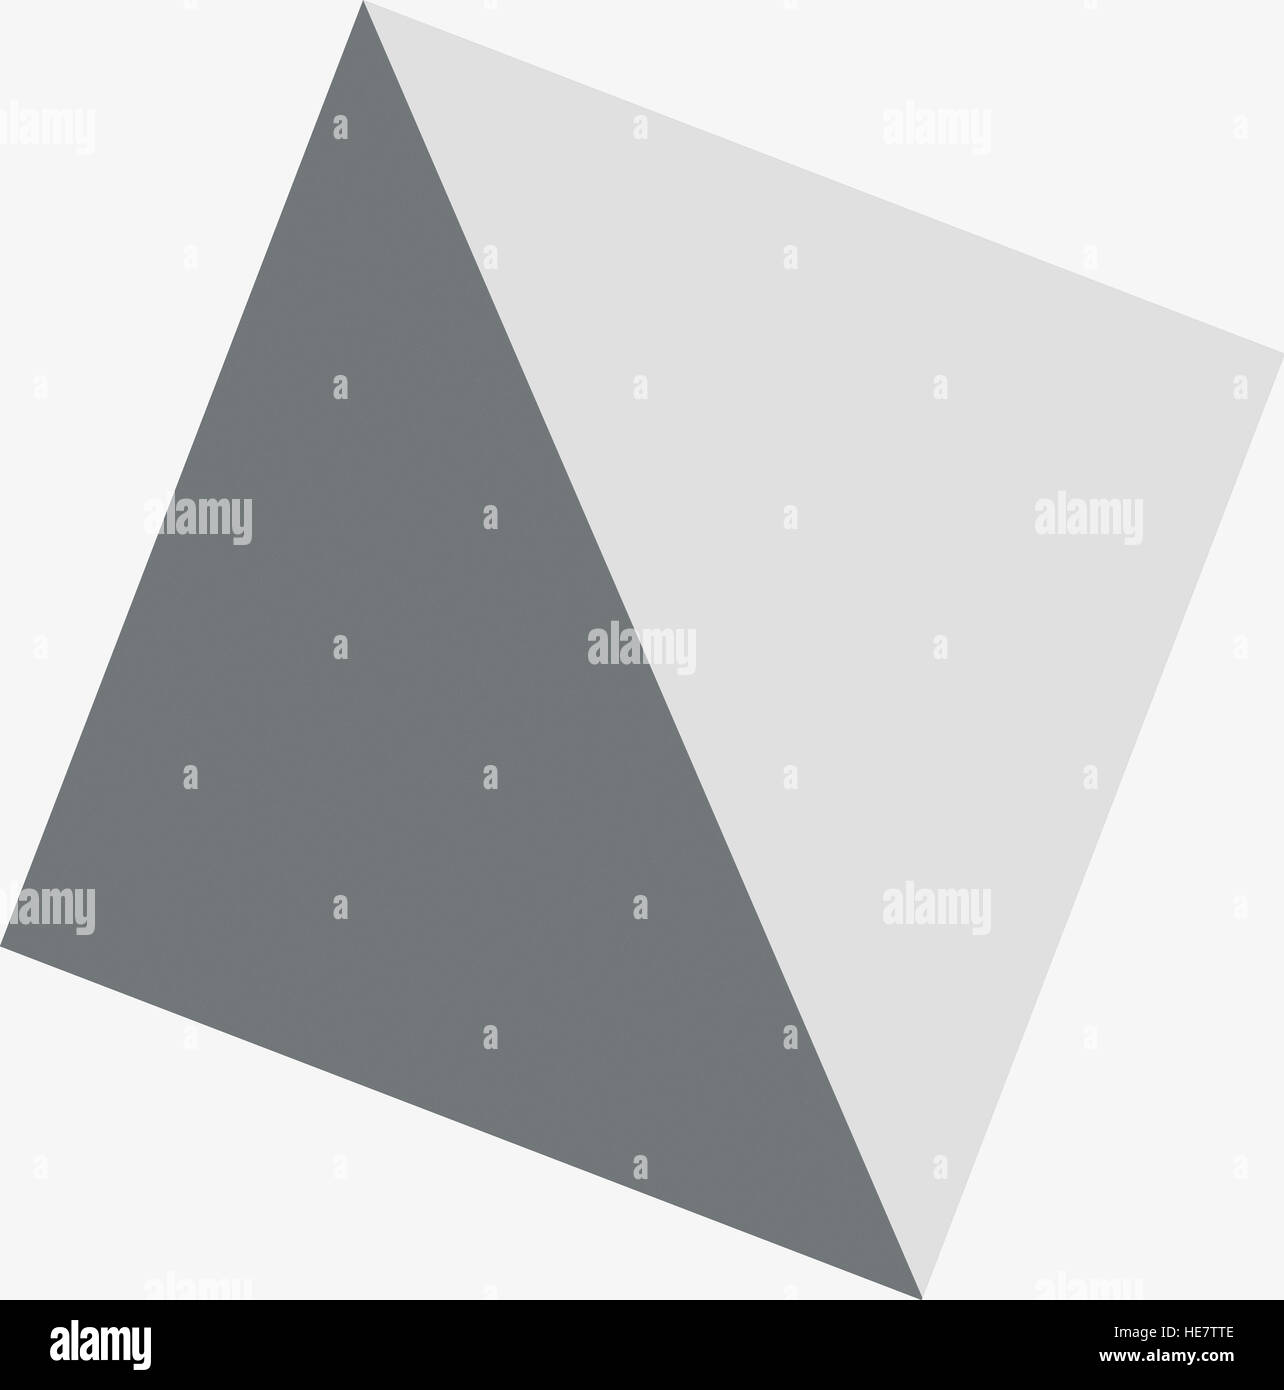 Geometrical Cut Out Stock Images & Pictures - Alamy